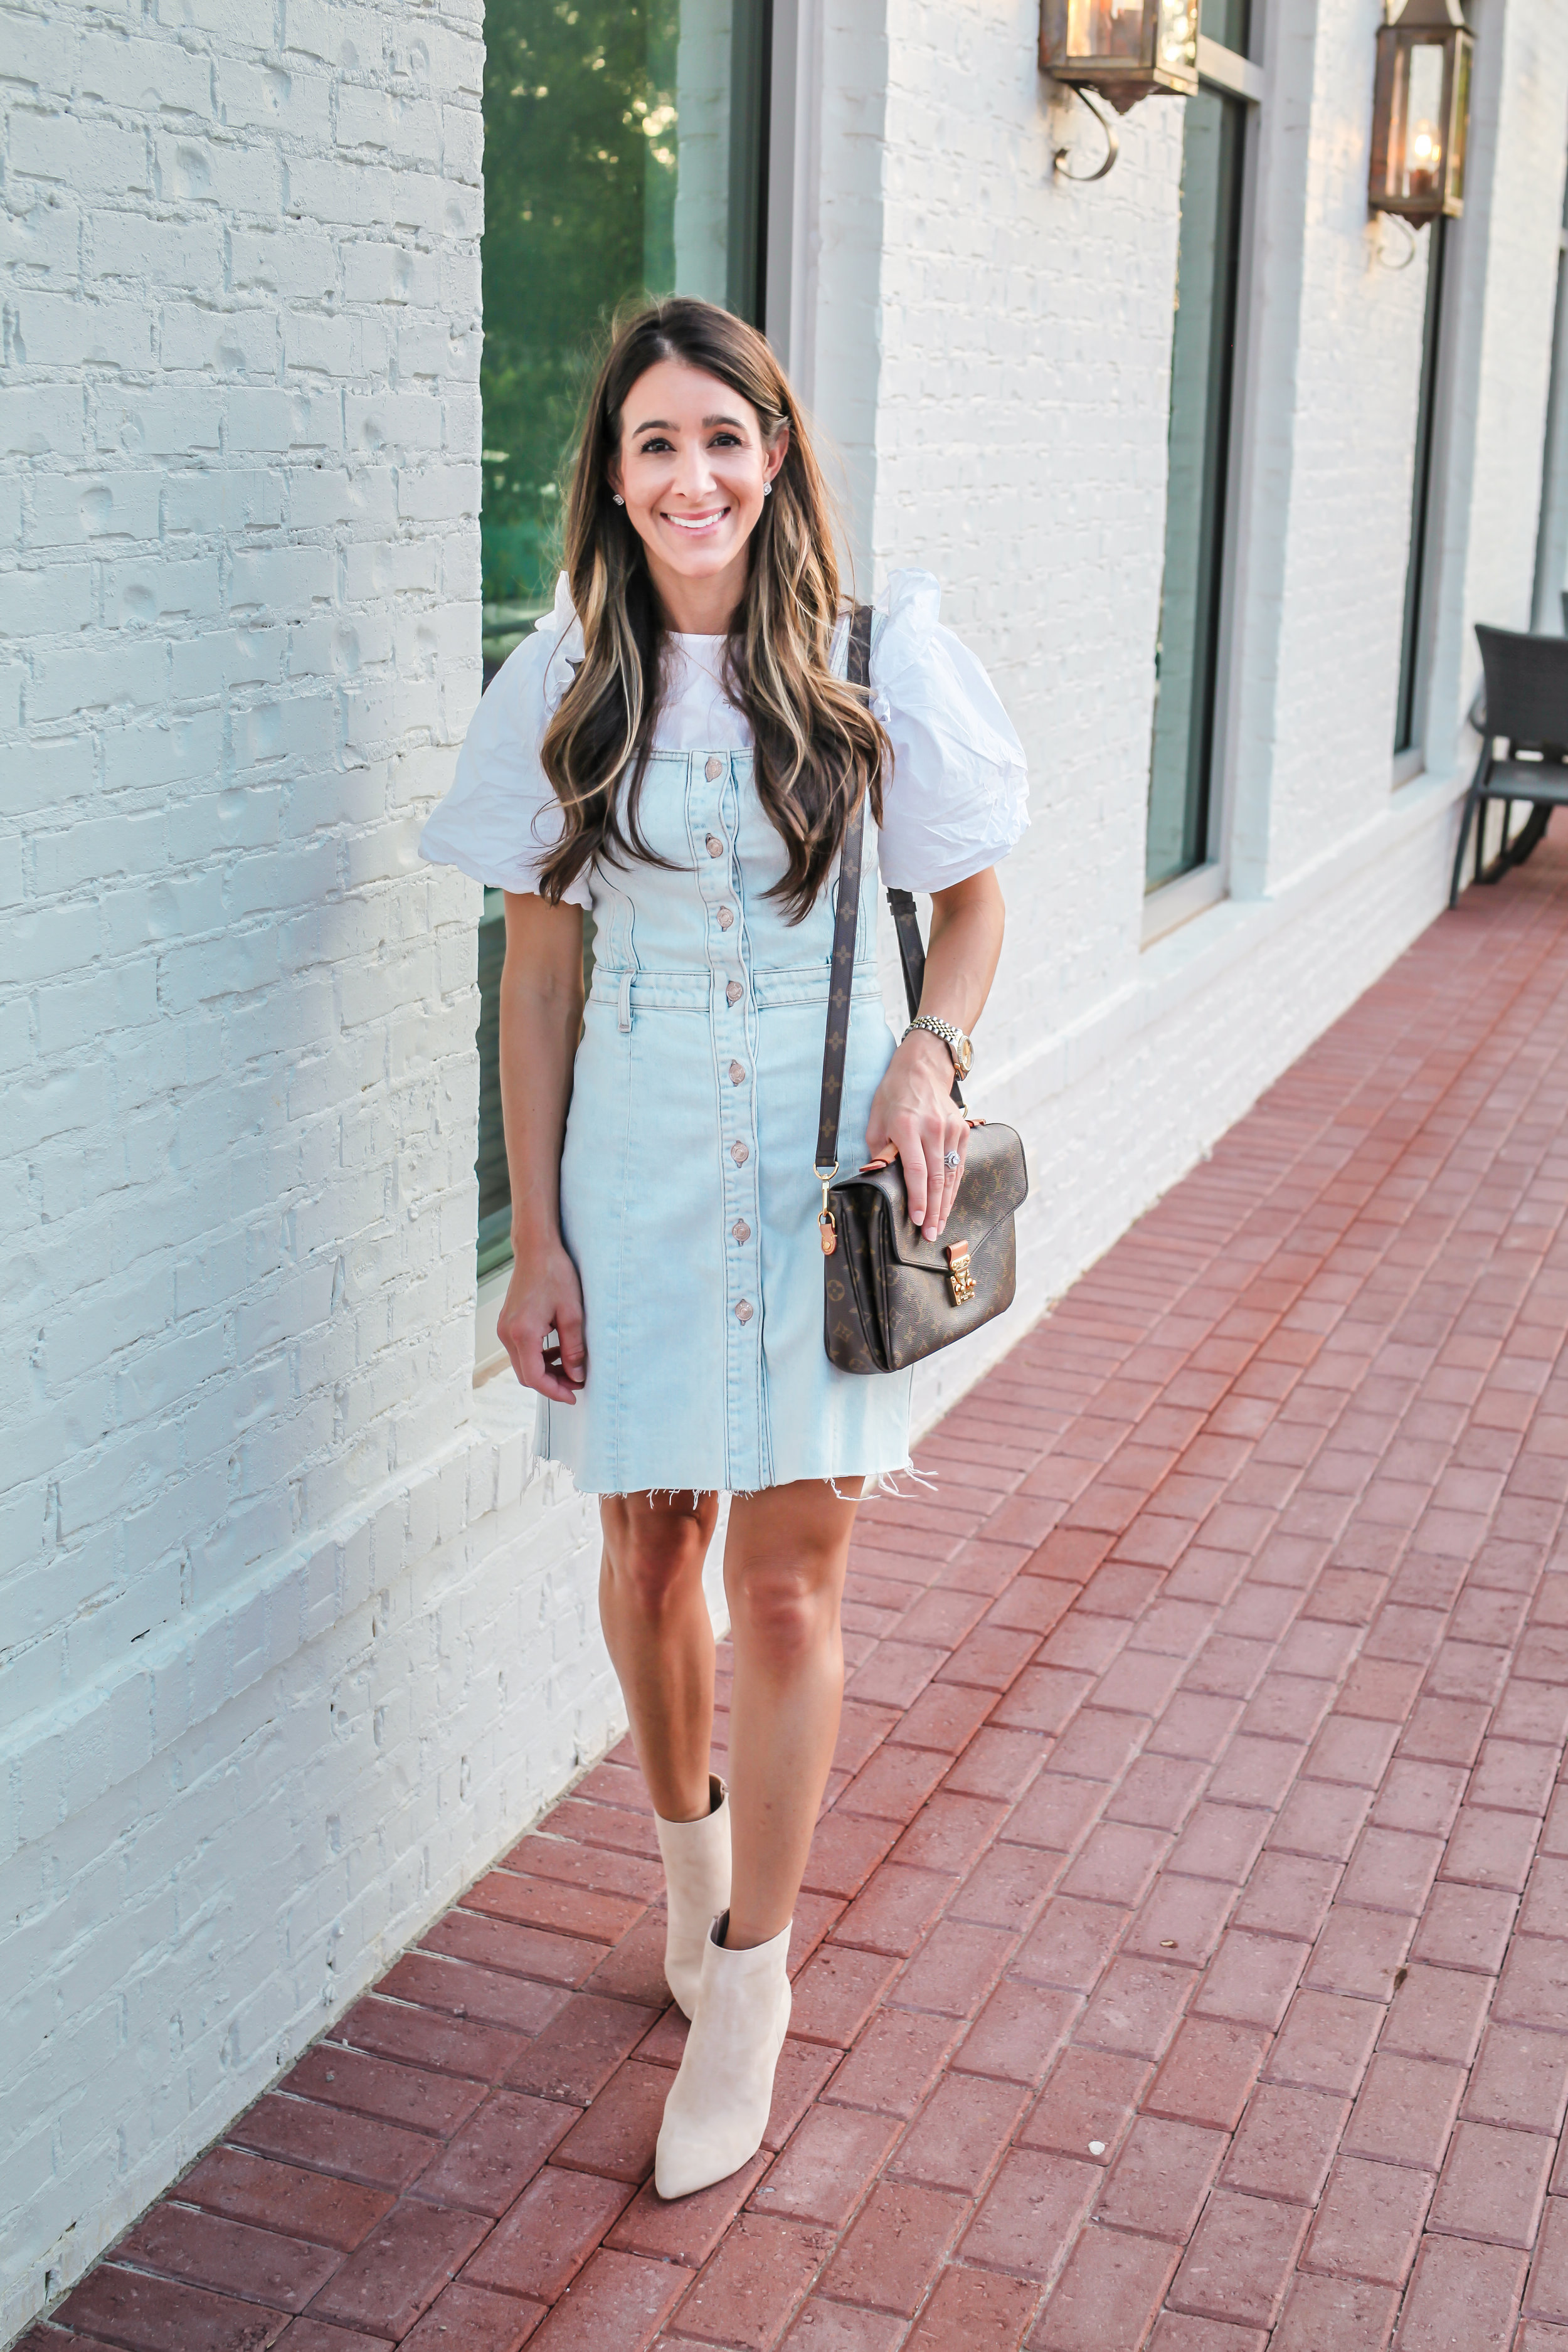 DRESS -  7 FOR ALL MANKIND | SHIRT - LOFT - SIMILAR  HERE  |SHOES-  CHARLES DAVID | BAG - LOUIS VUITTON | WATCH - ROLEX | LIPSTICK - NARS | BLUSH - NARS COLOR IS DOLCE VITA